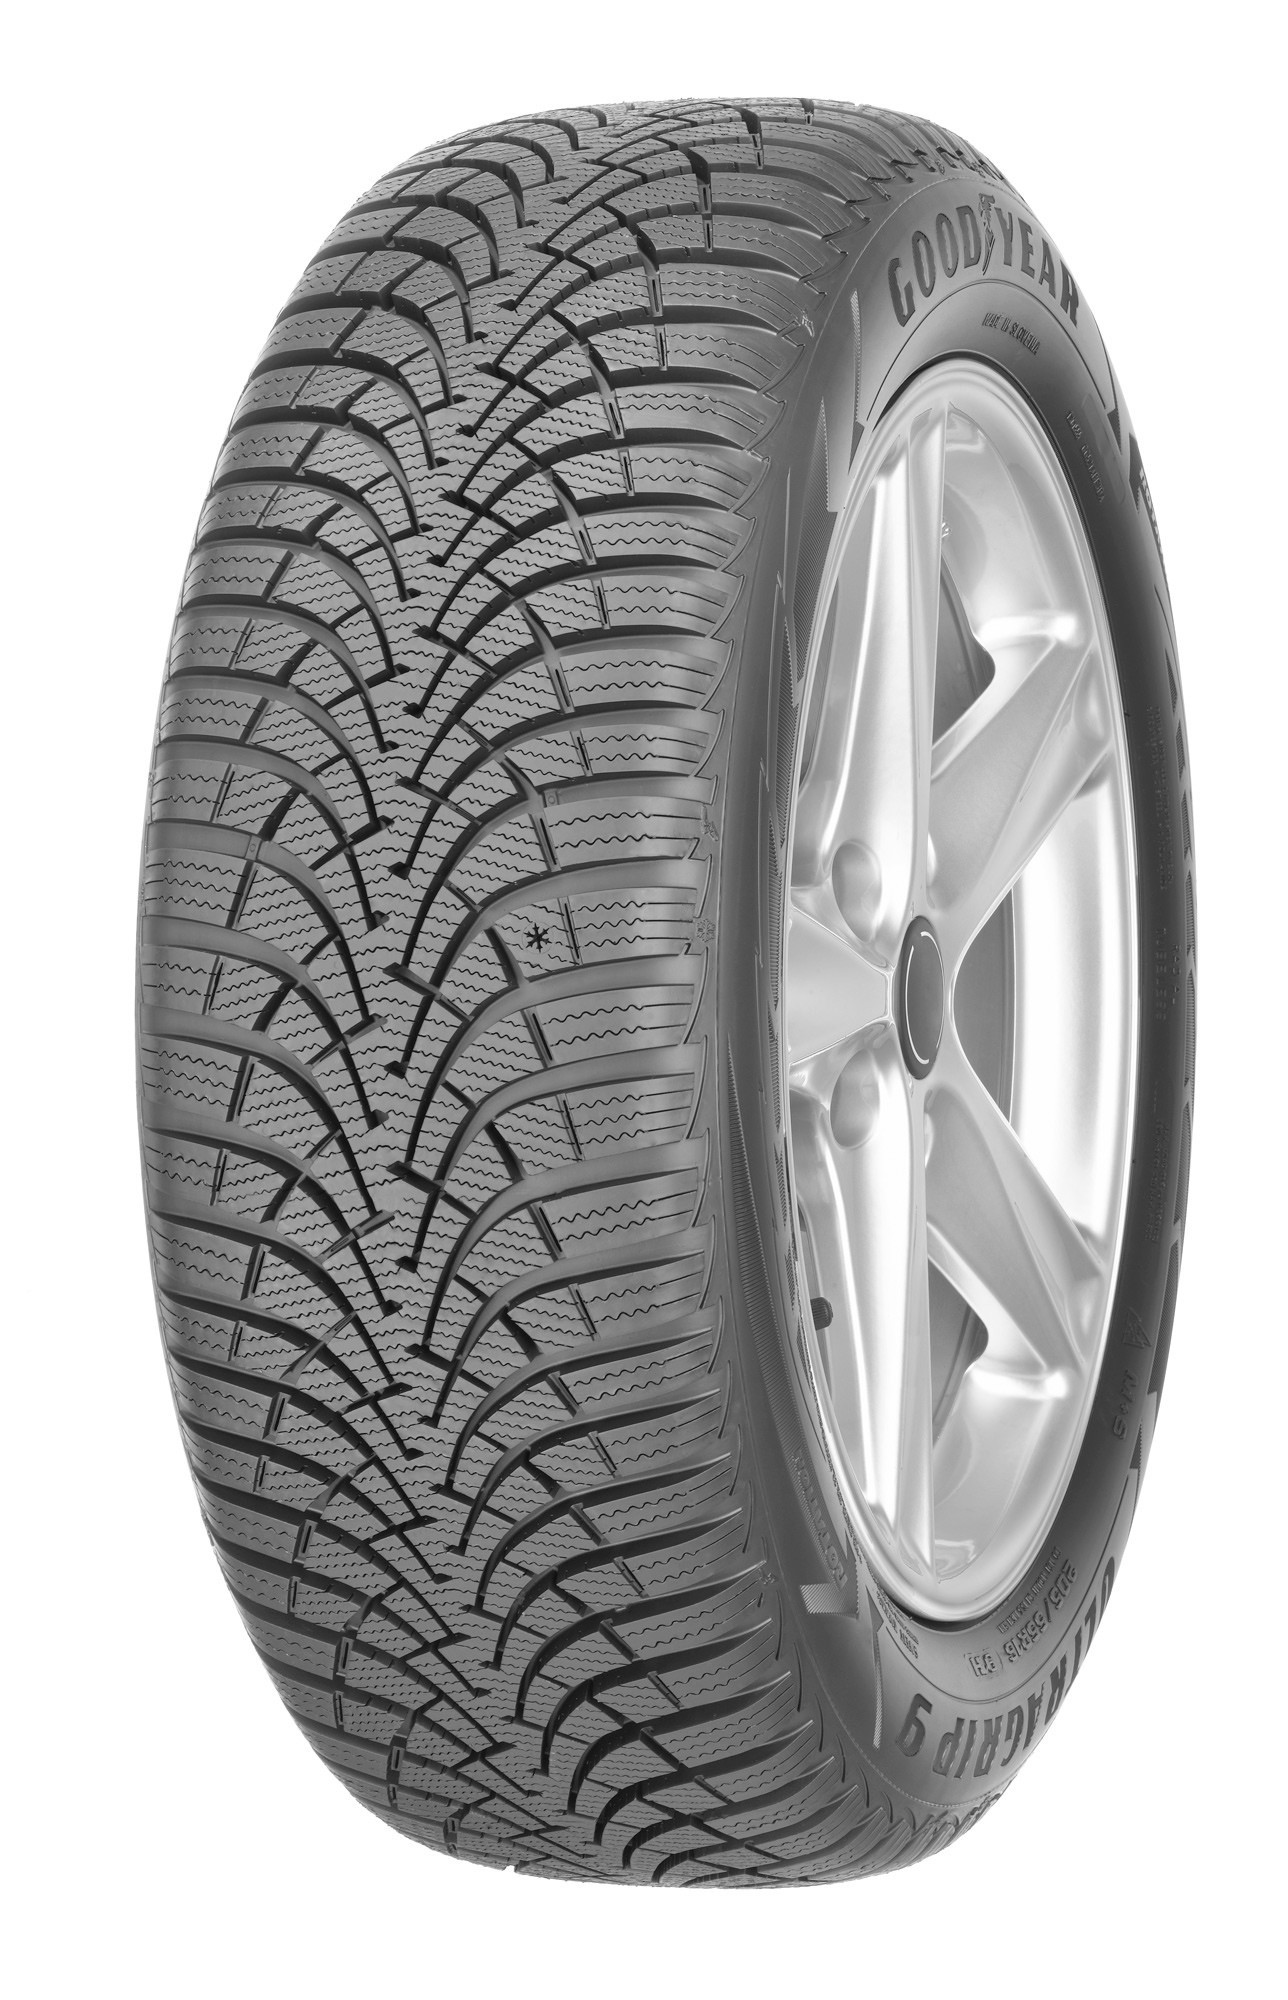 Anvelopa Iarna 165/70R14 81T Goodyear Ultra Grip 9 Ms